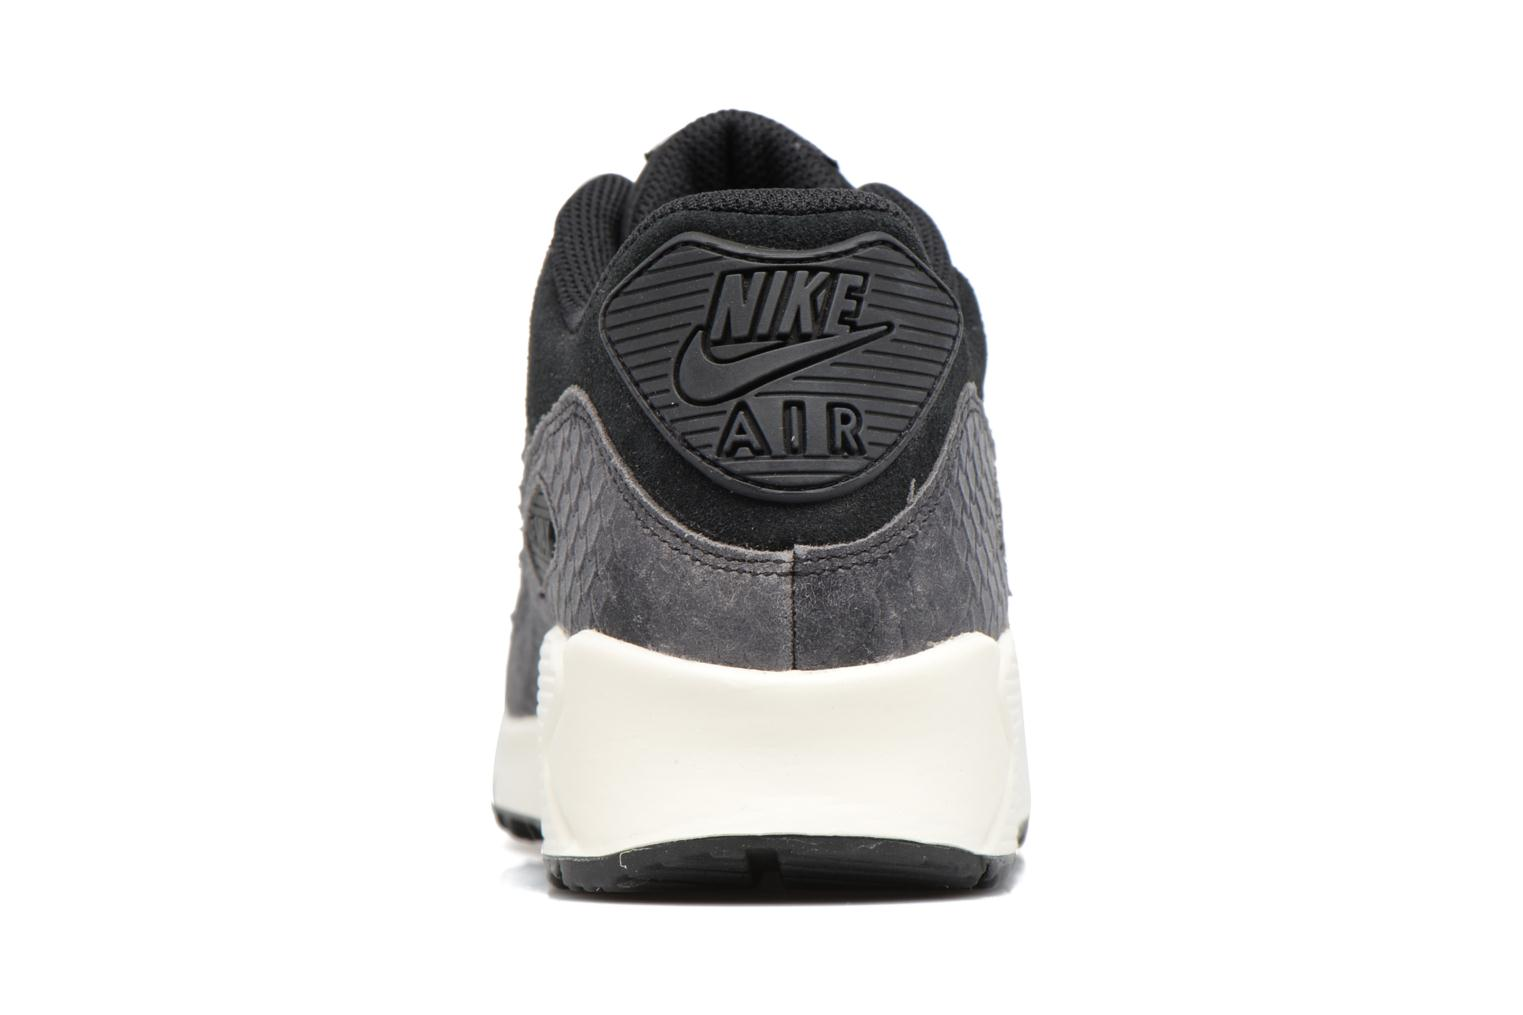 Wmns Air Max 90 Prm Black/Black-Sail-Dark Grey